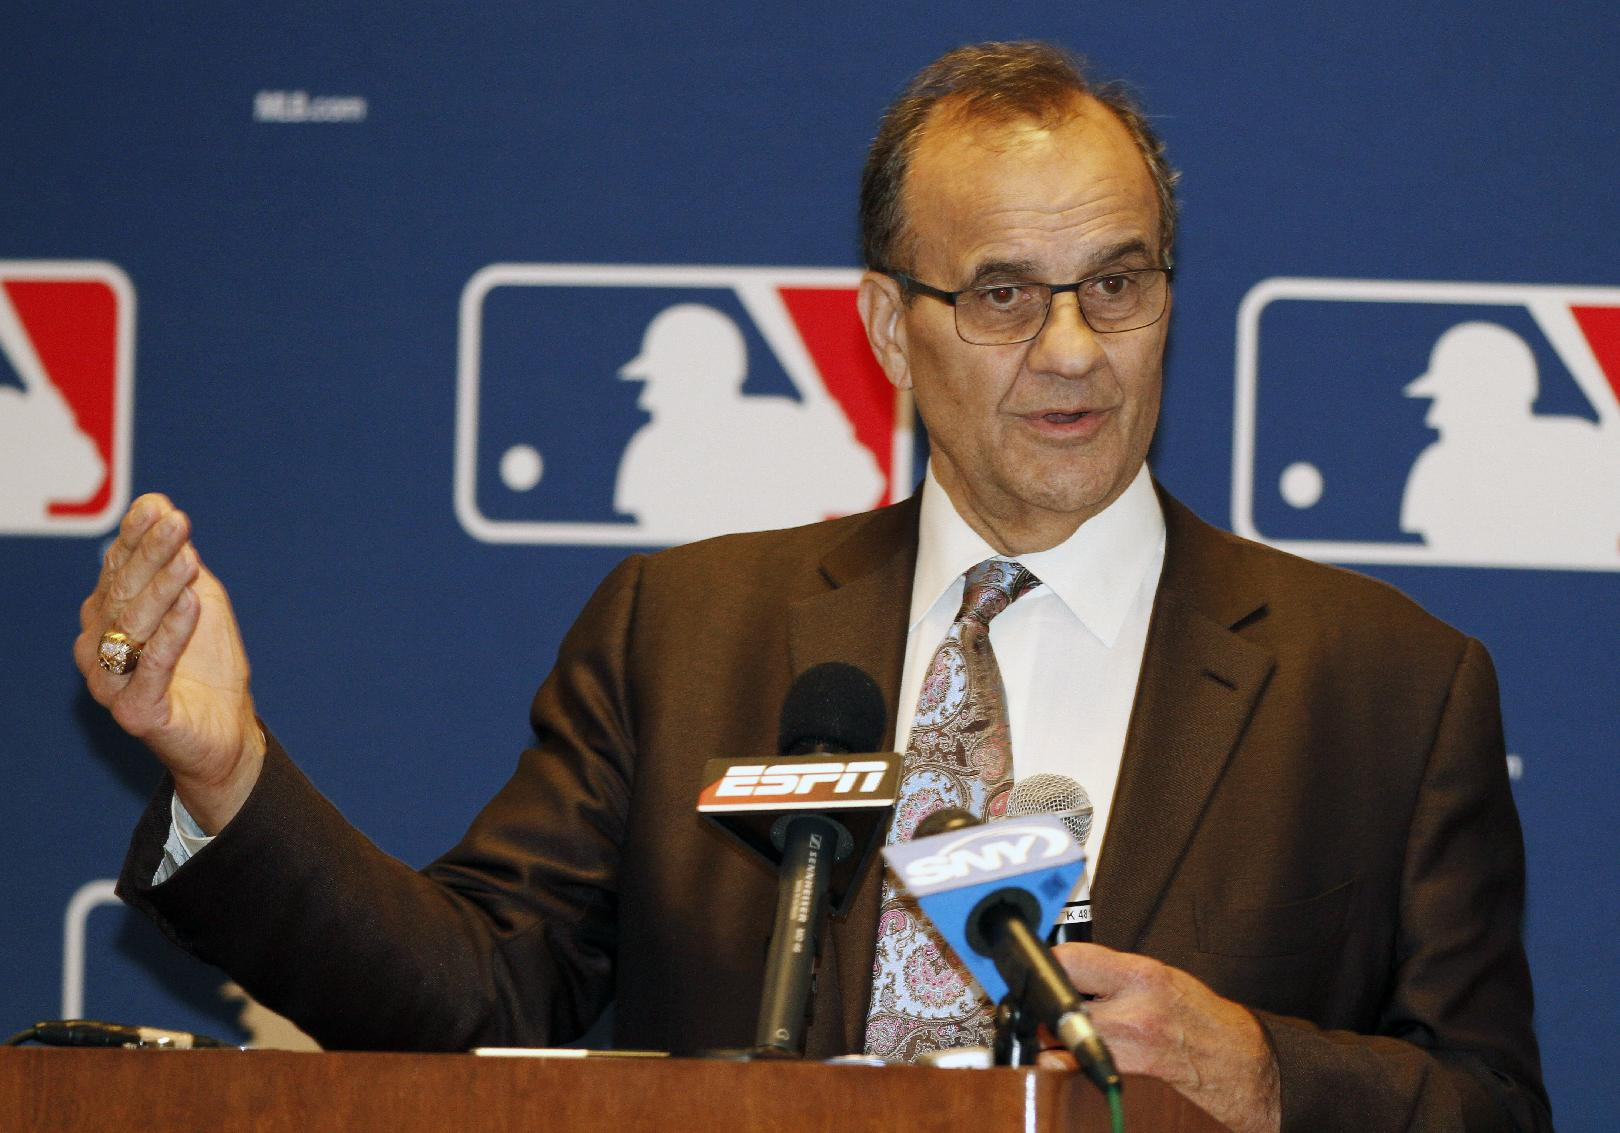 Major League Baseball executive Joe Torre talks with the media at the annual baseball general managers meeting, Tuesday, Nov. 12, 2013, in Orlando, Fla